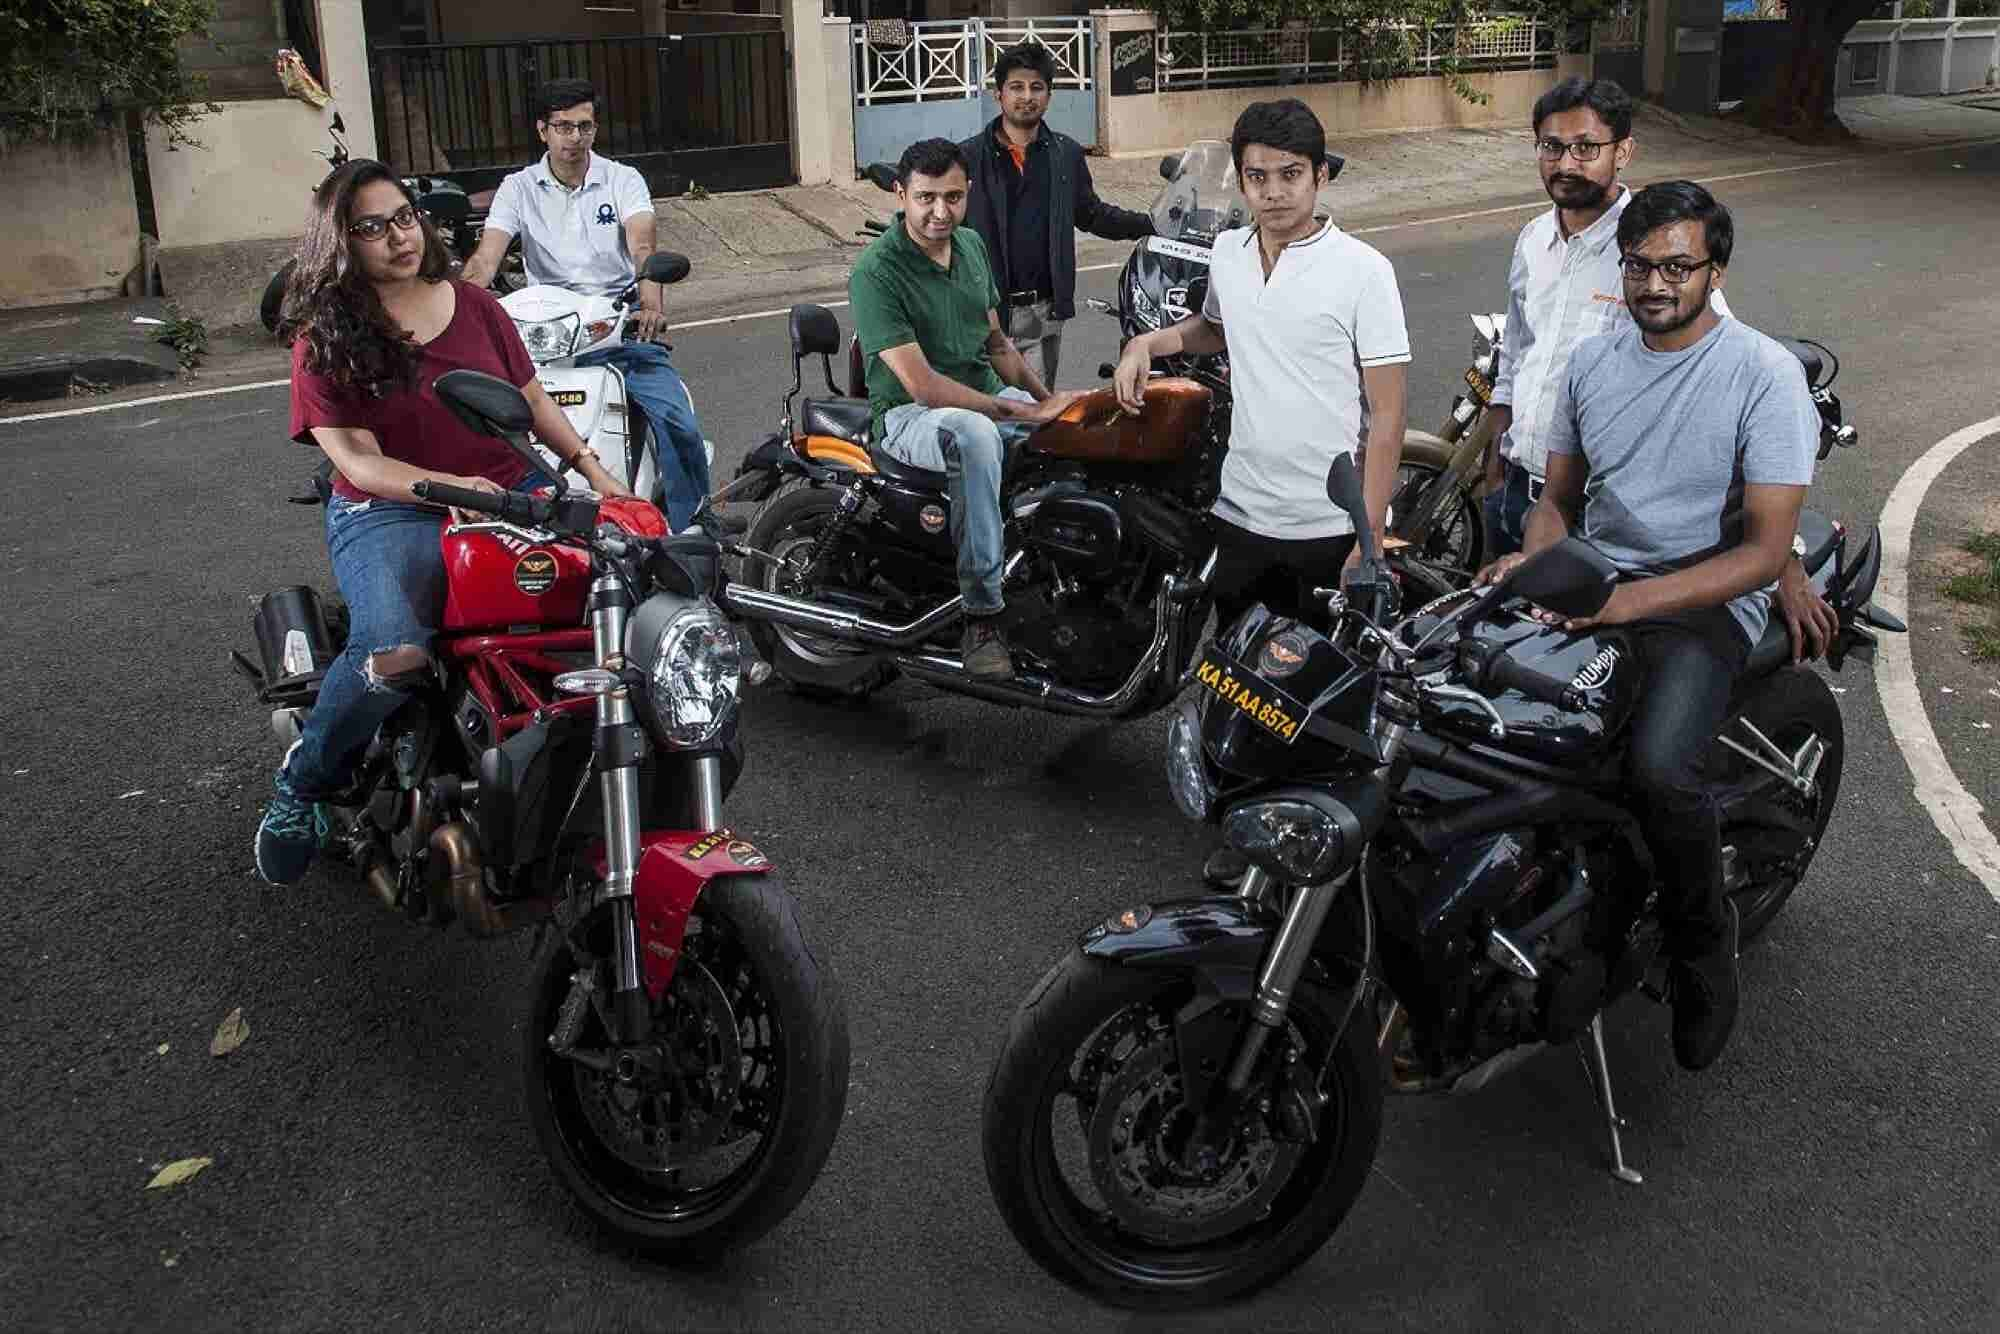 These Bike Rental Start-ups are Finding Opportunities in the Other Side of Business